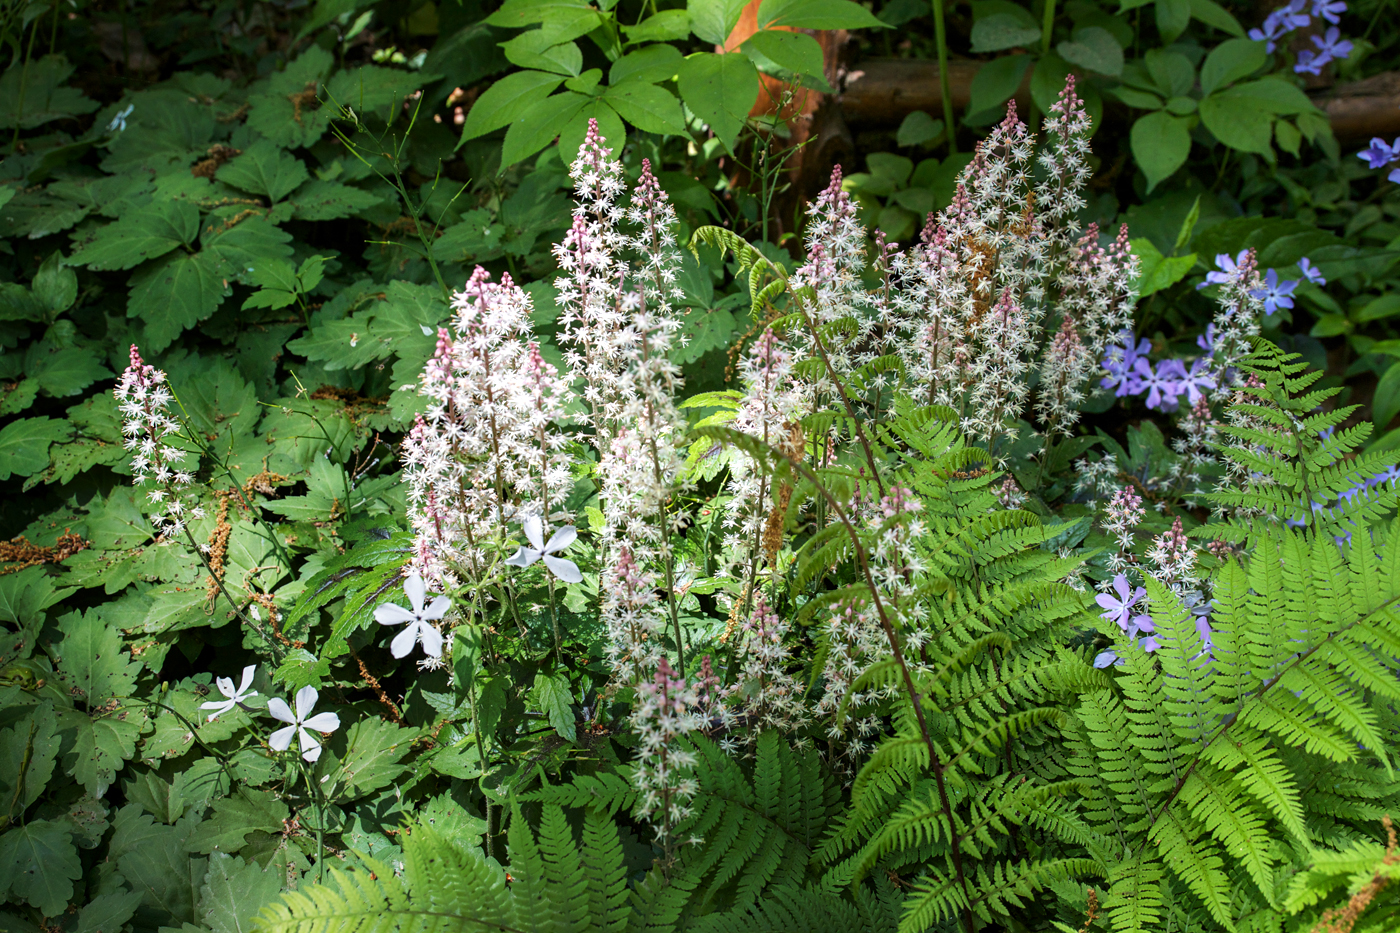 Garden in the Woods, foam flower, phlox and ferns, by Justine Hand for Gardenista